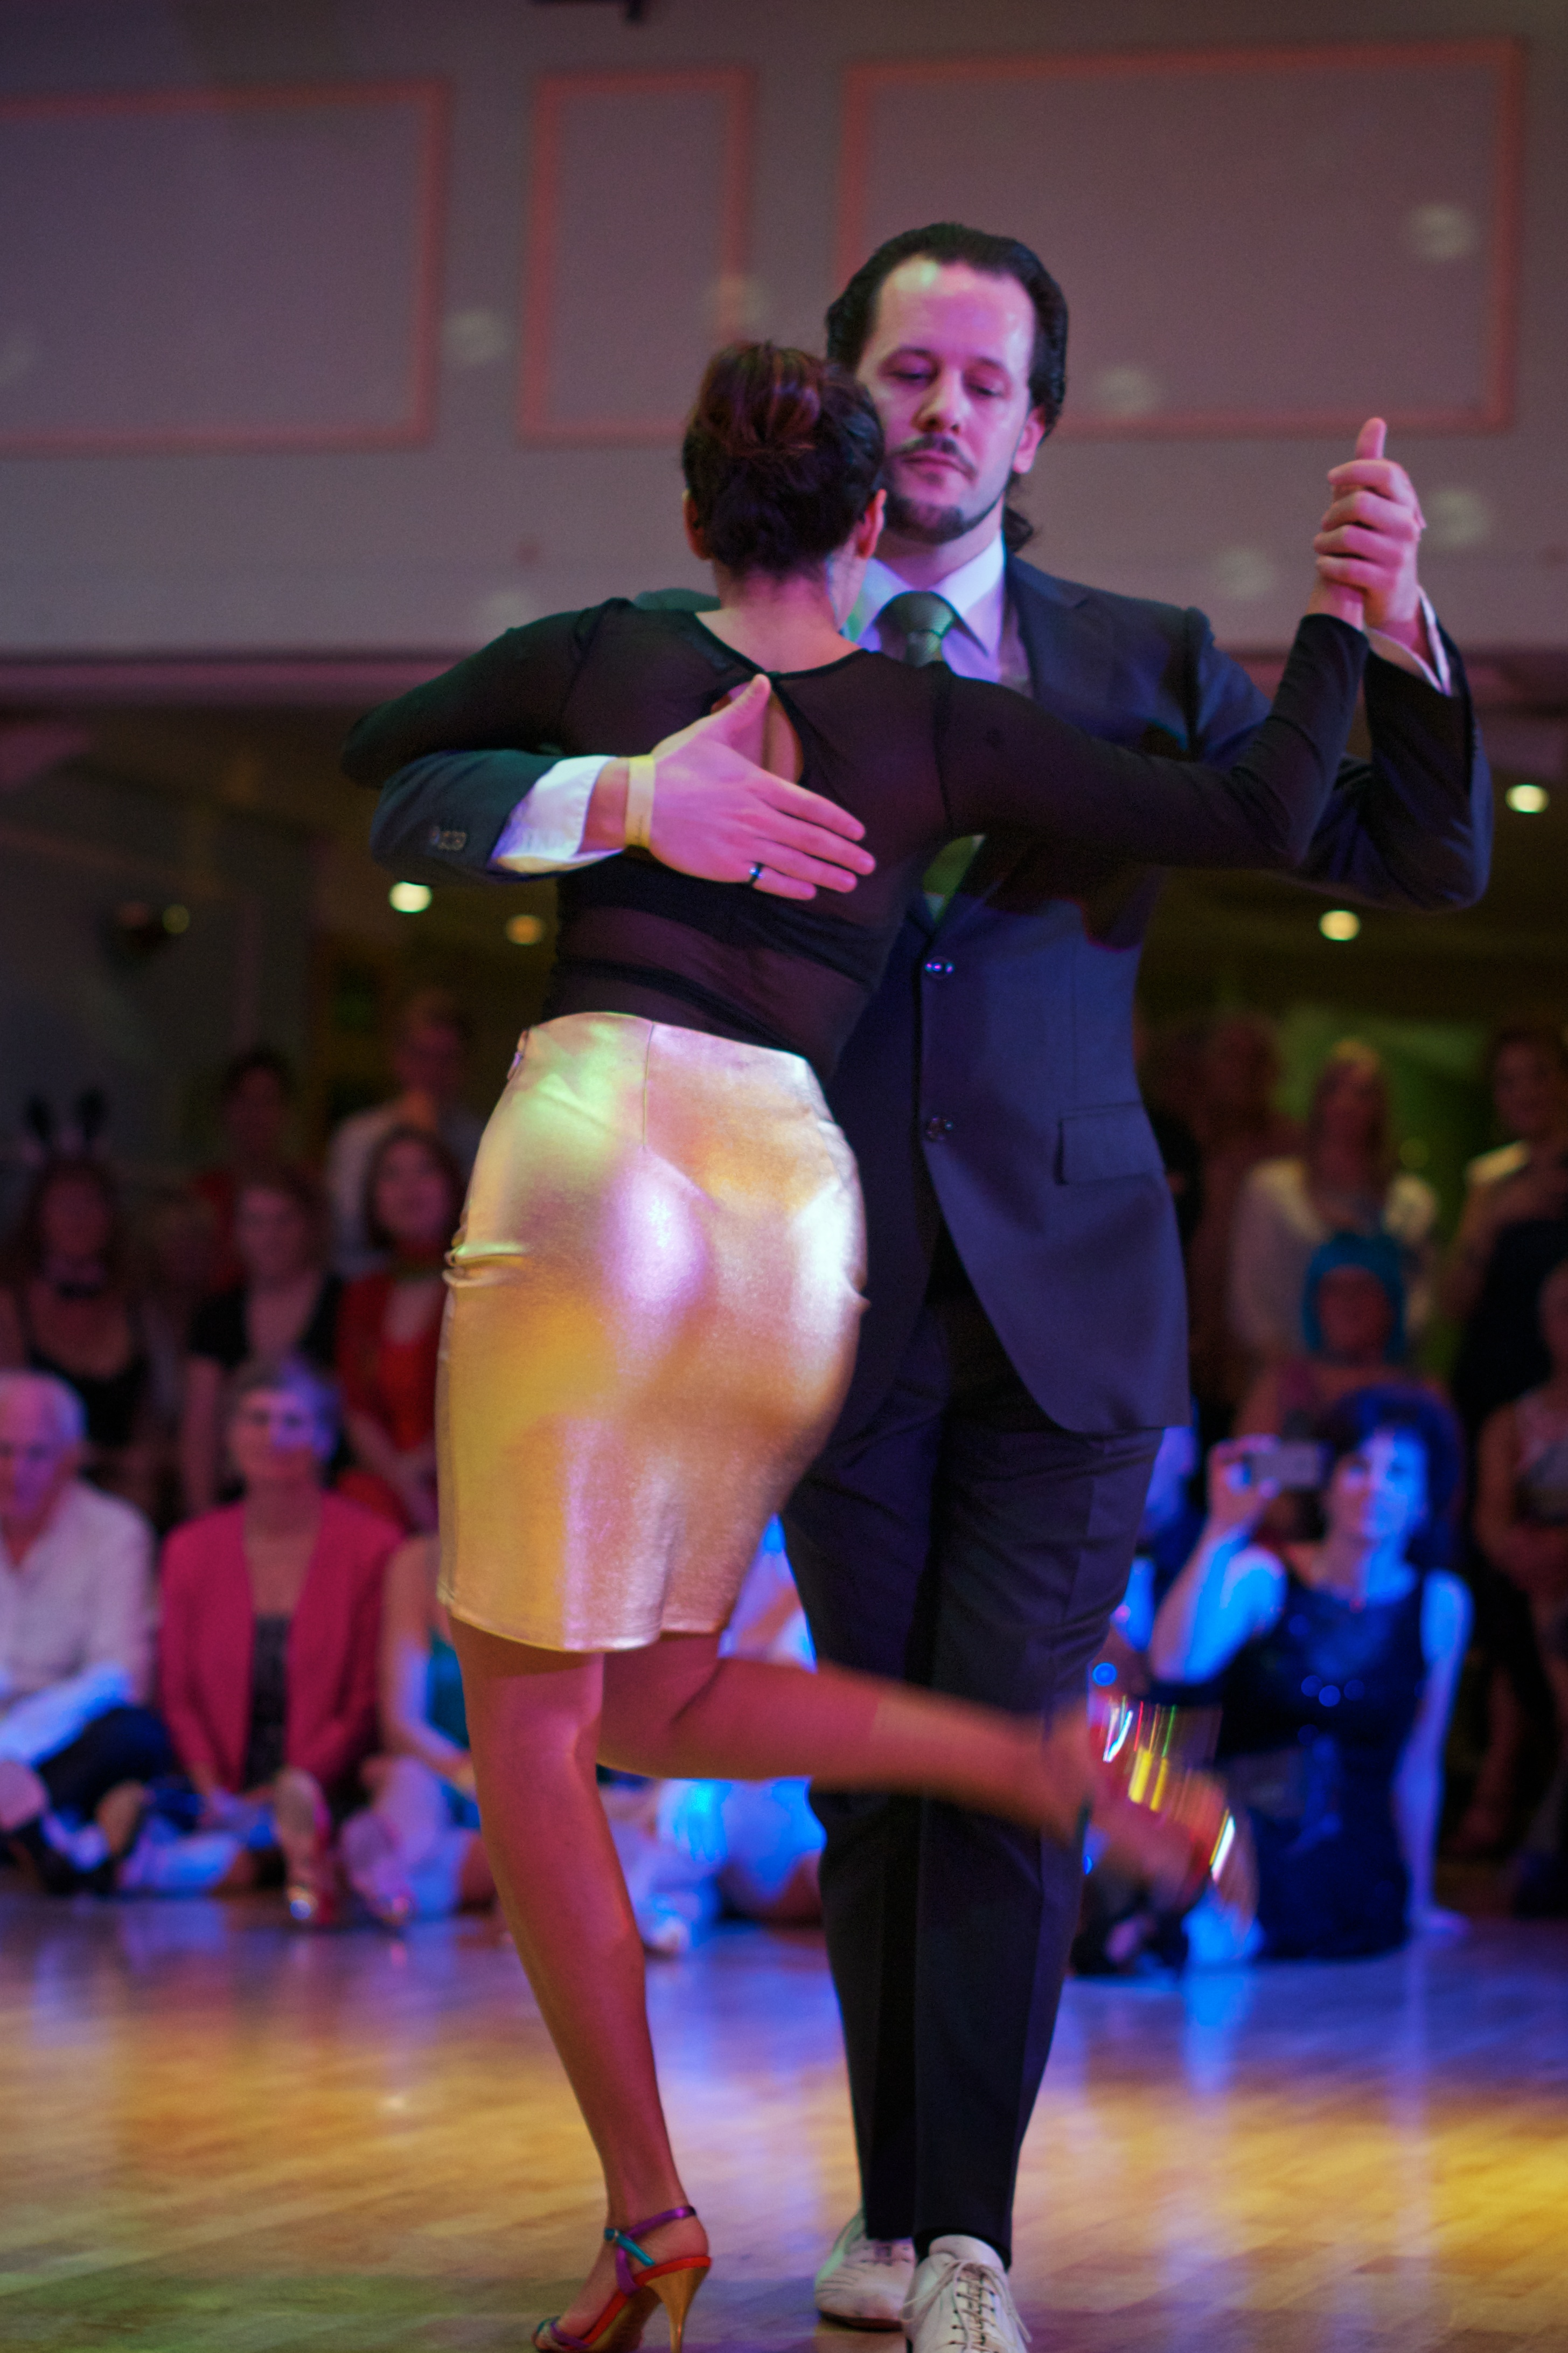 About Tango Fever